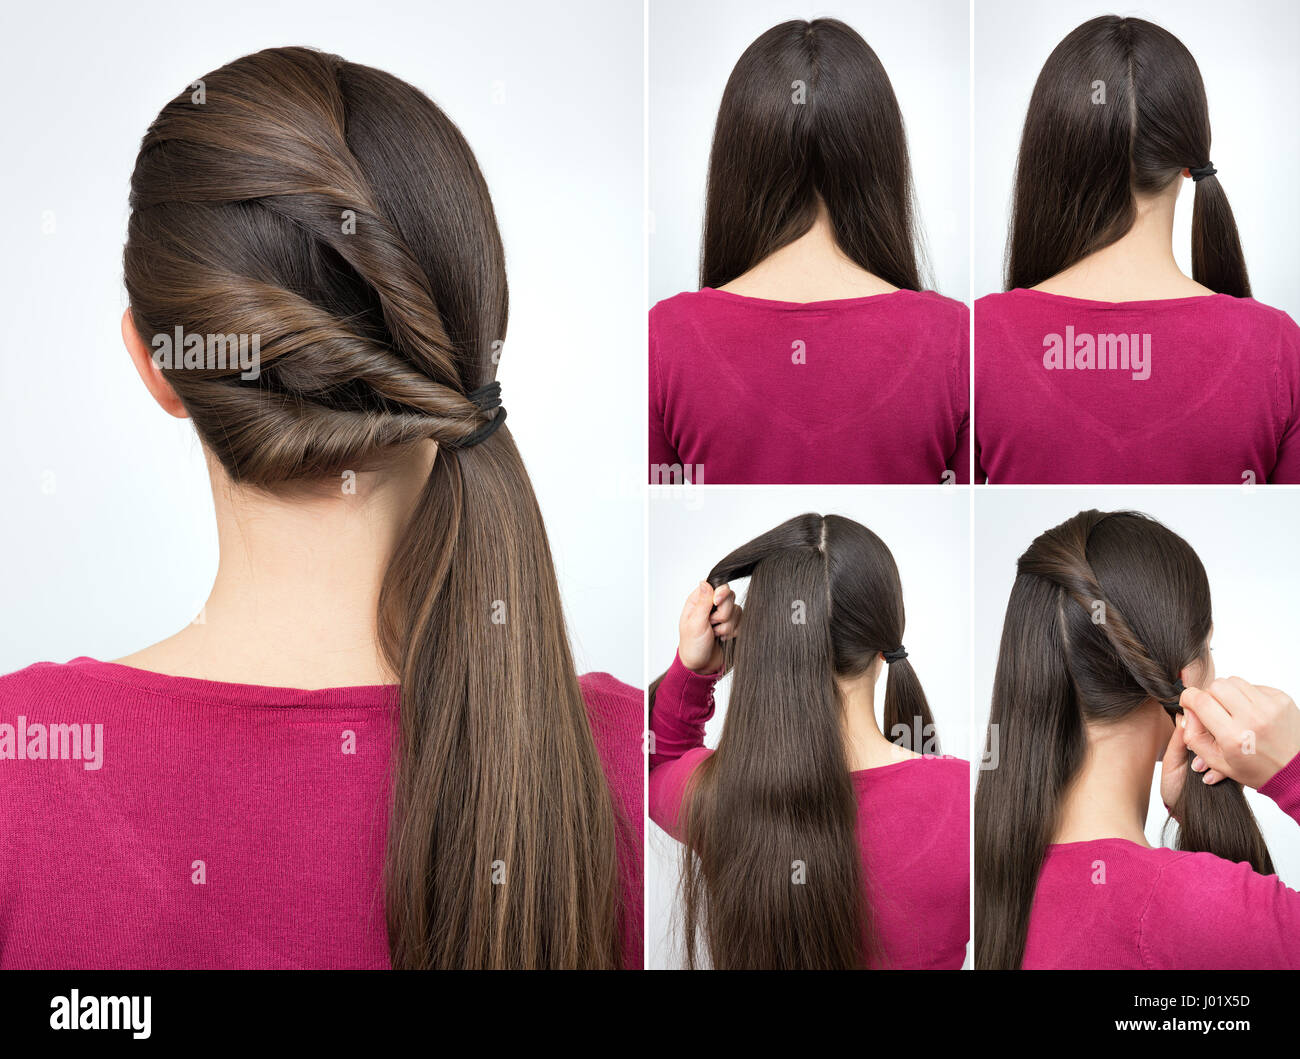 Phenomenal Simple Hairstyle Pony Tail With Twisted Hair Tutorial Step By Step Schematic Wiring Diagrams Amerangerunnerswayorg